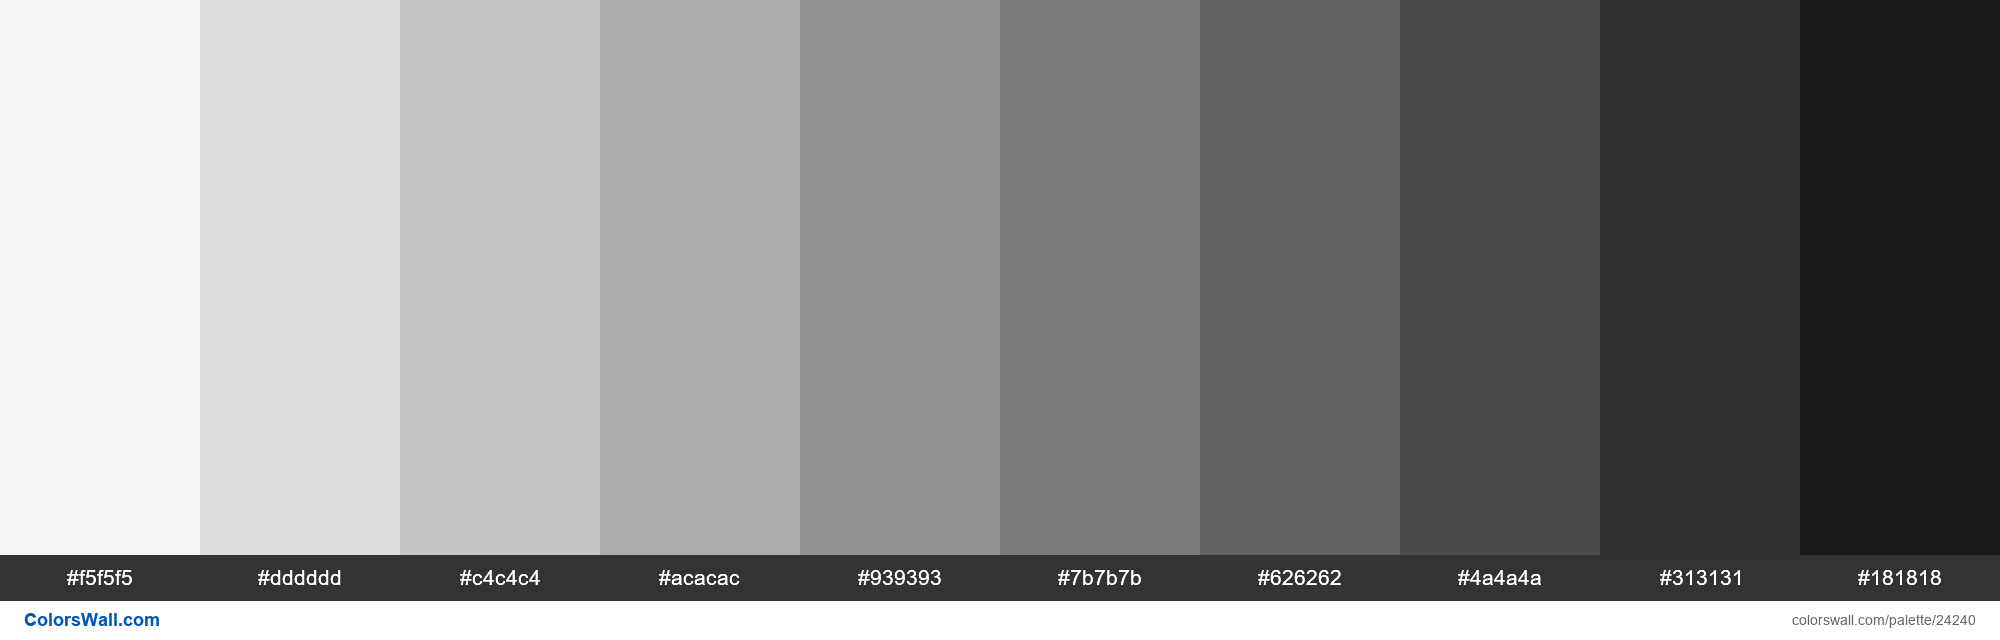 Shades Of White Smoke F5f5f5 Hex Color Hex Rgb Codes